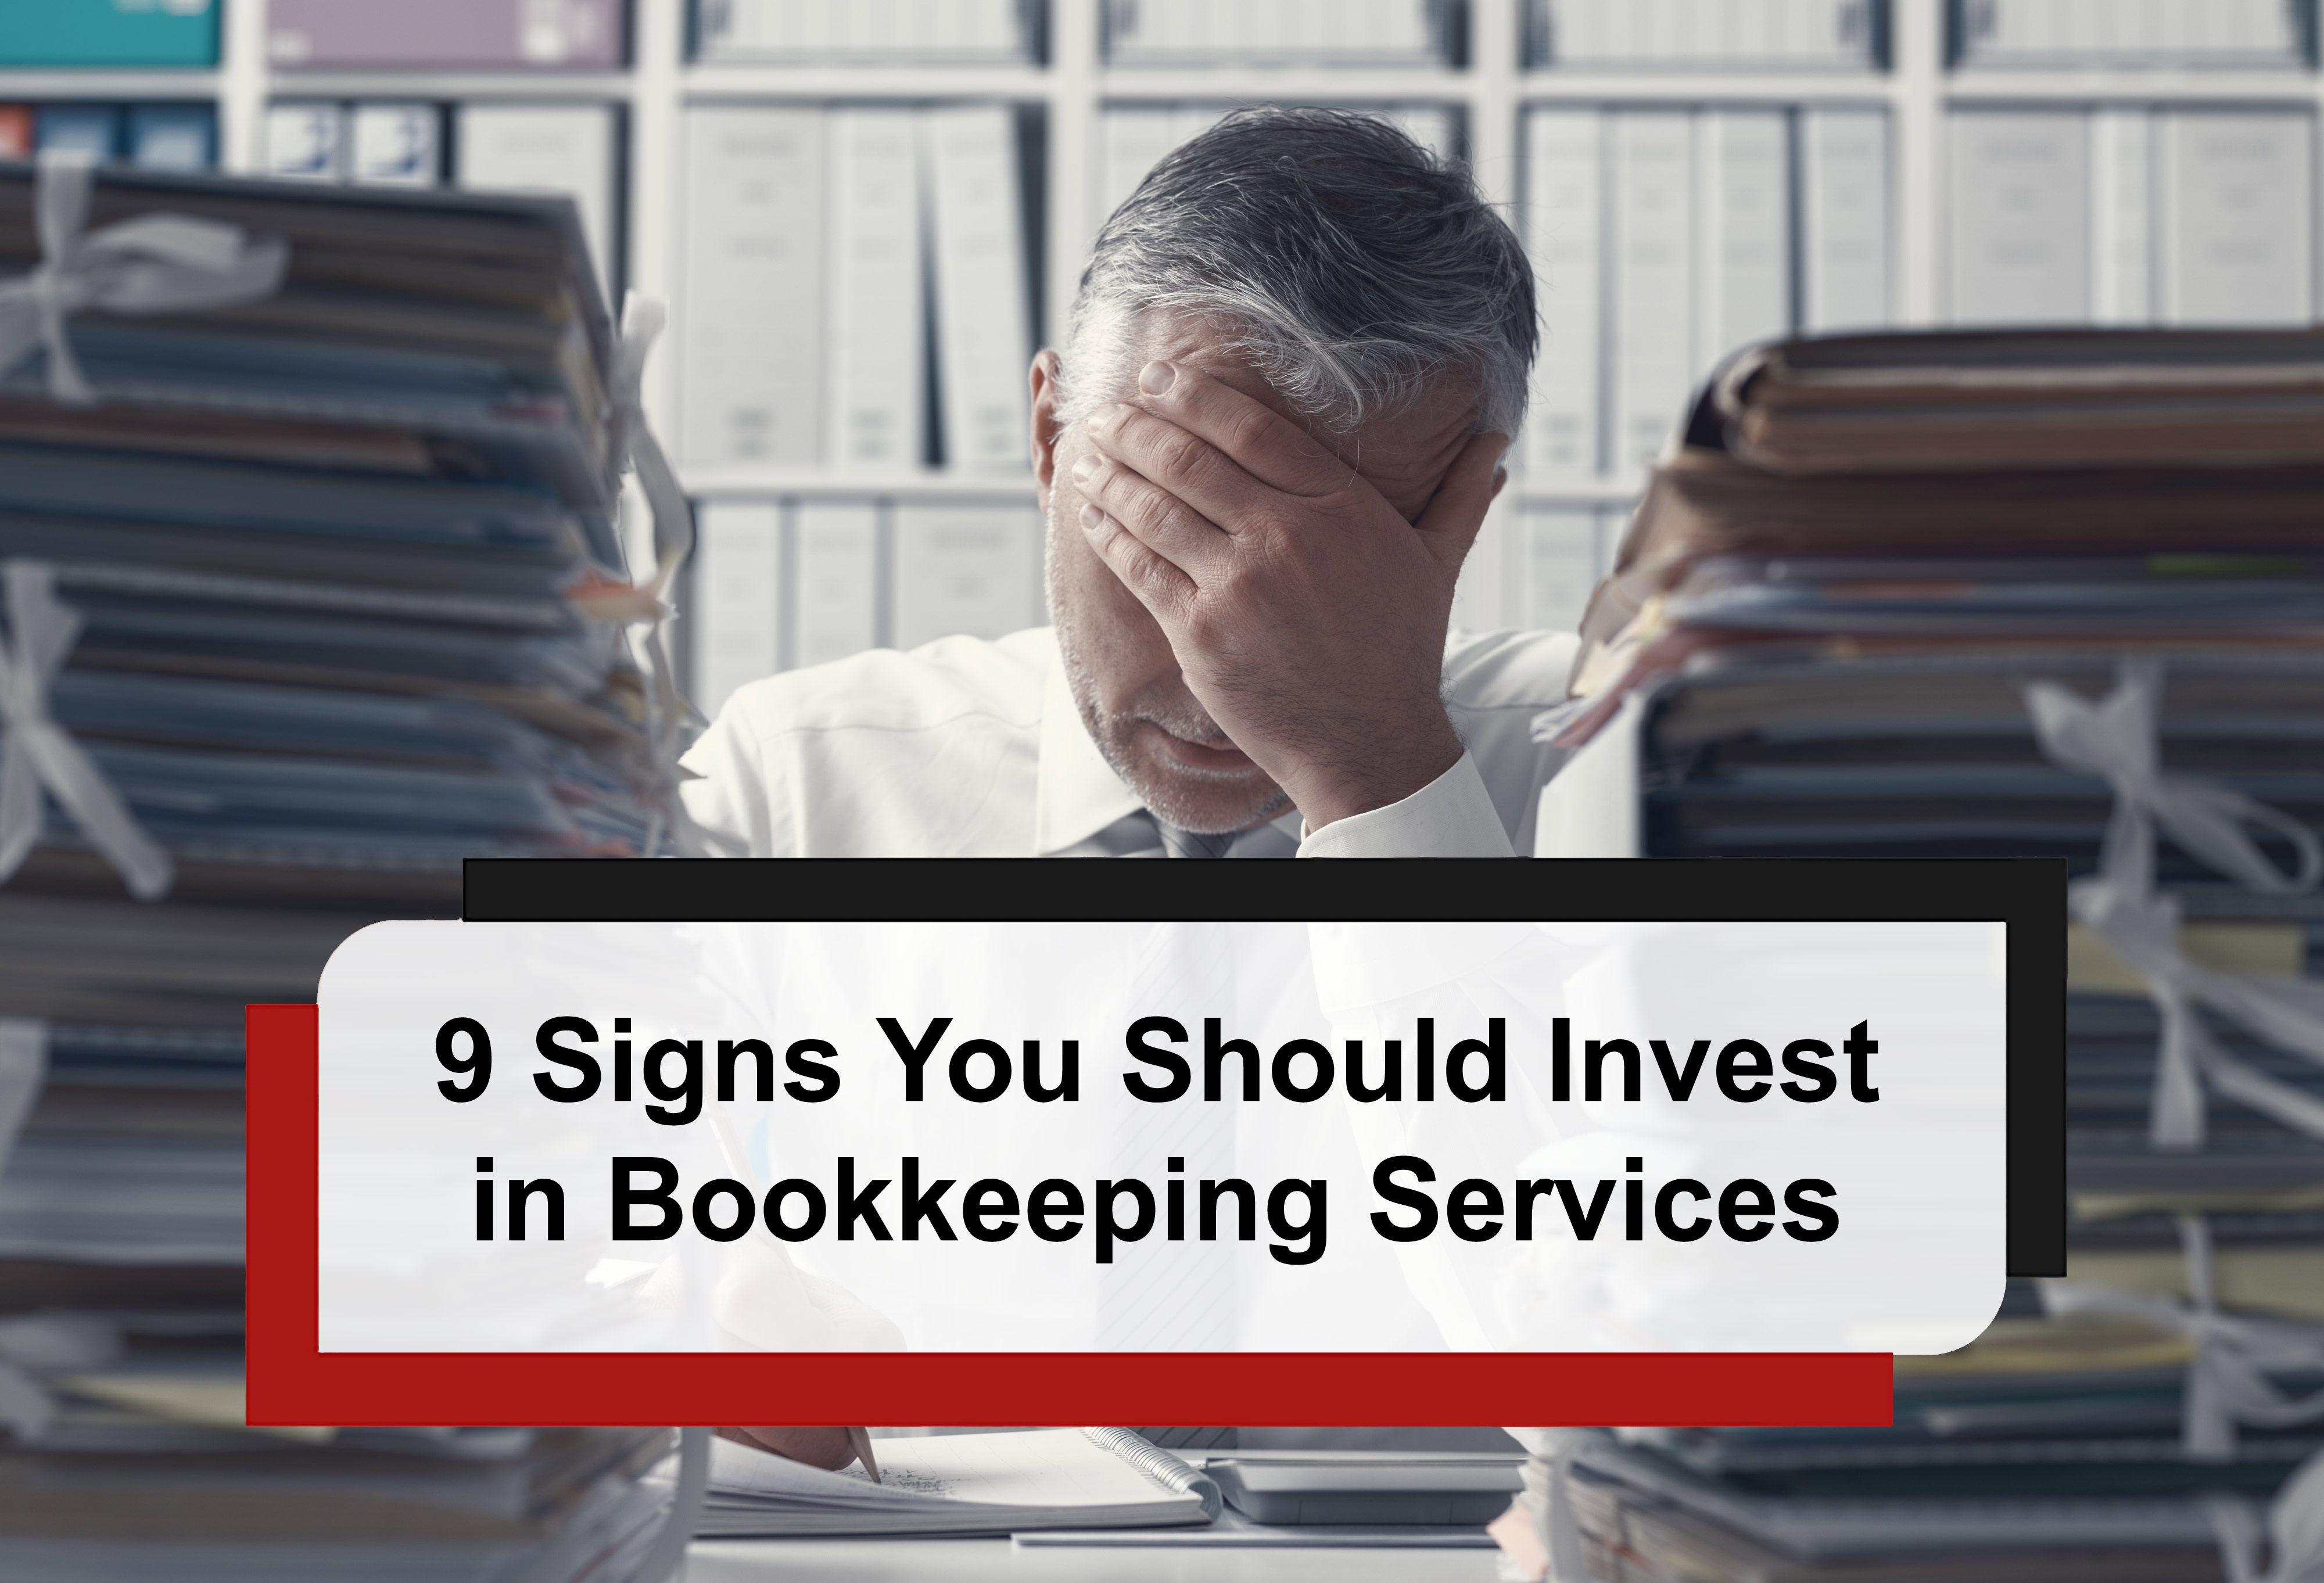 9 Signs You Should Invest in Bookkeeping Services